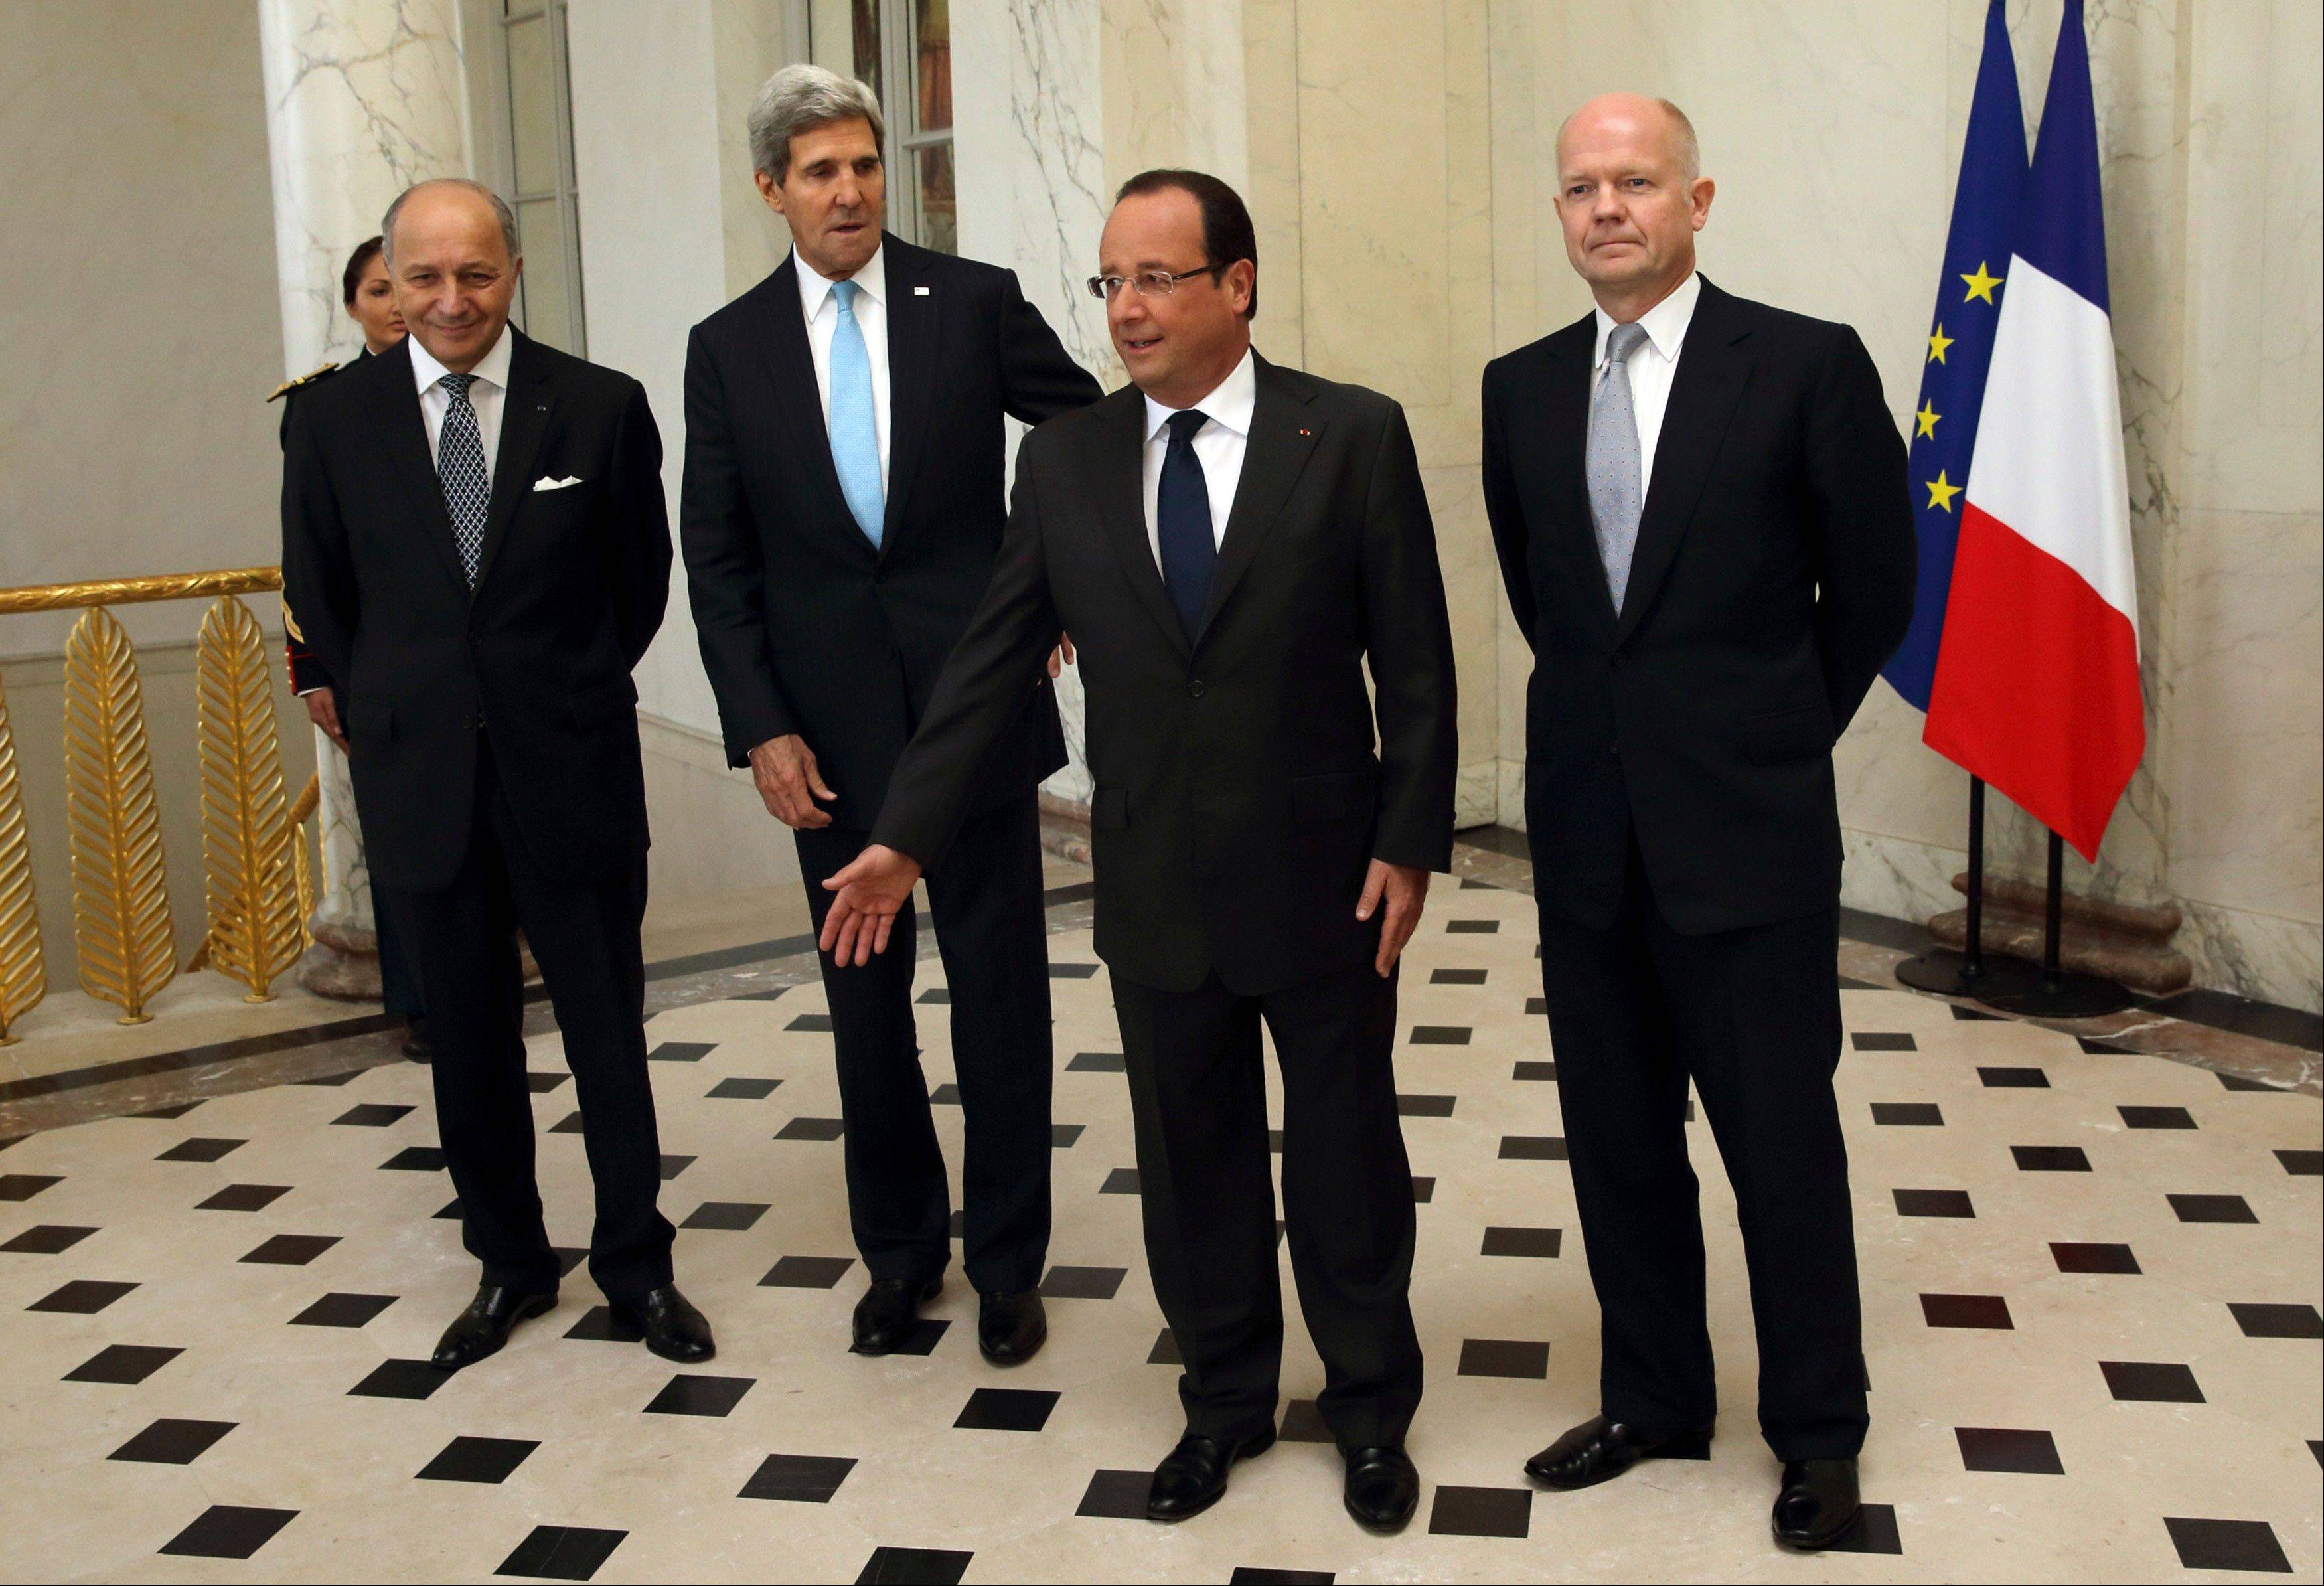 French Foreign Minister Laurent Fabius, left, U.S. Secretary of State John Kerry, French President Francois Hollande and British Foreign Secretary William Hague in the lobby of the Elysee Palace in Paris, prior to a meeting on Syria, Monday.